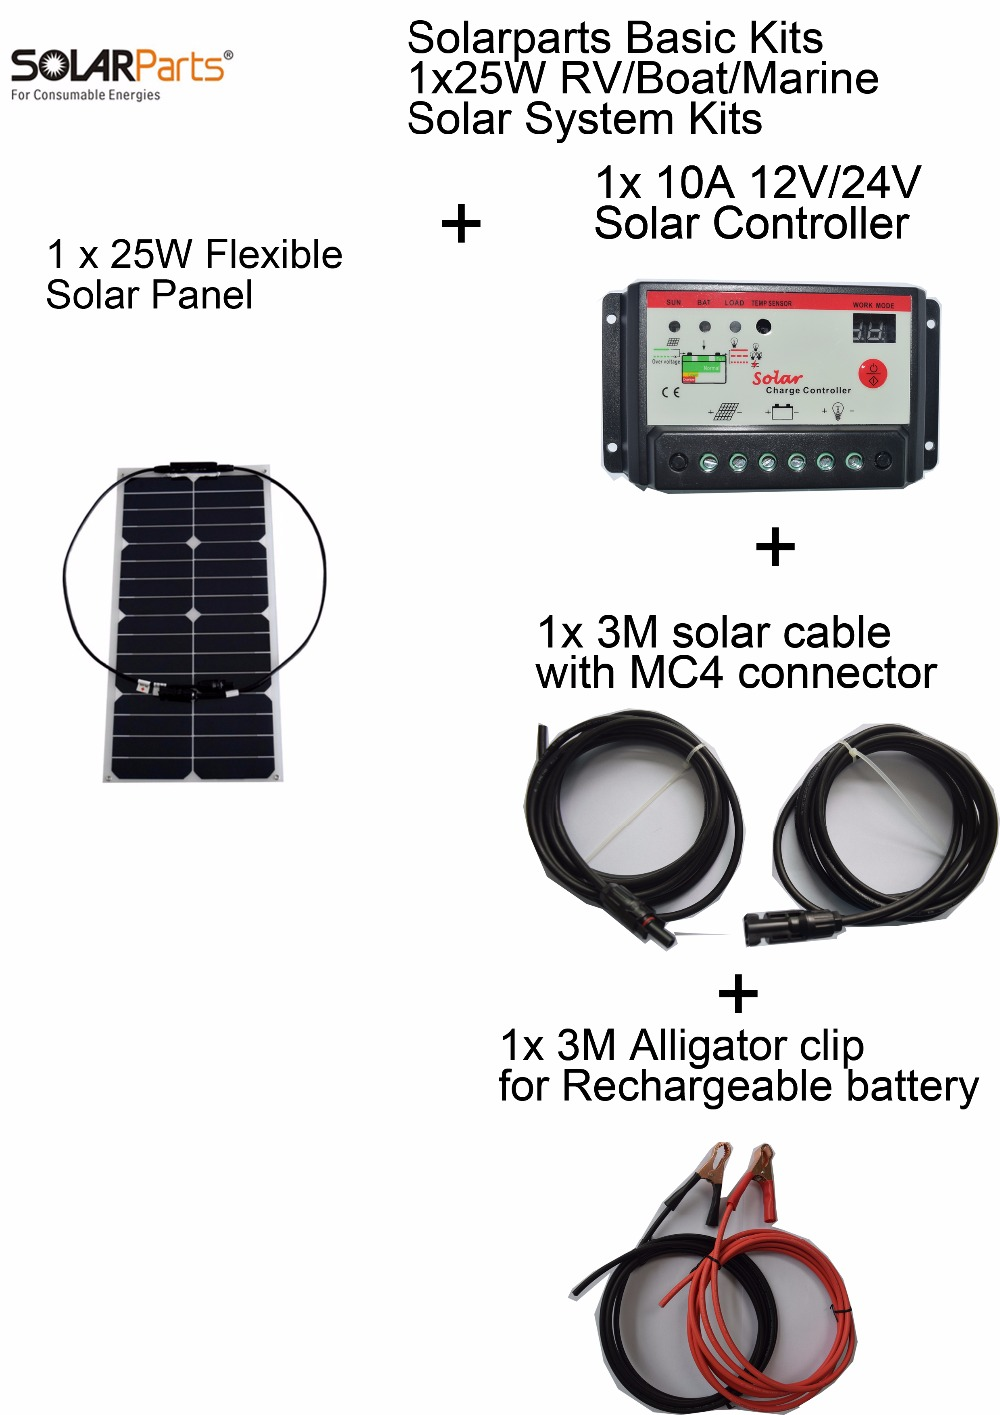 Solarparts Basic Kits 12V 1x25W DIY RV/Marine Solar System Kits 25W flexible solar panel+controller+cable outdoo light led light solarparts 100w diy rv marine kits solar system1x100w flexible solar panel 12v 1 x10a 12v 24v solar controller set cables cheap